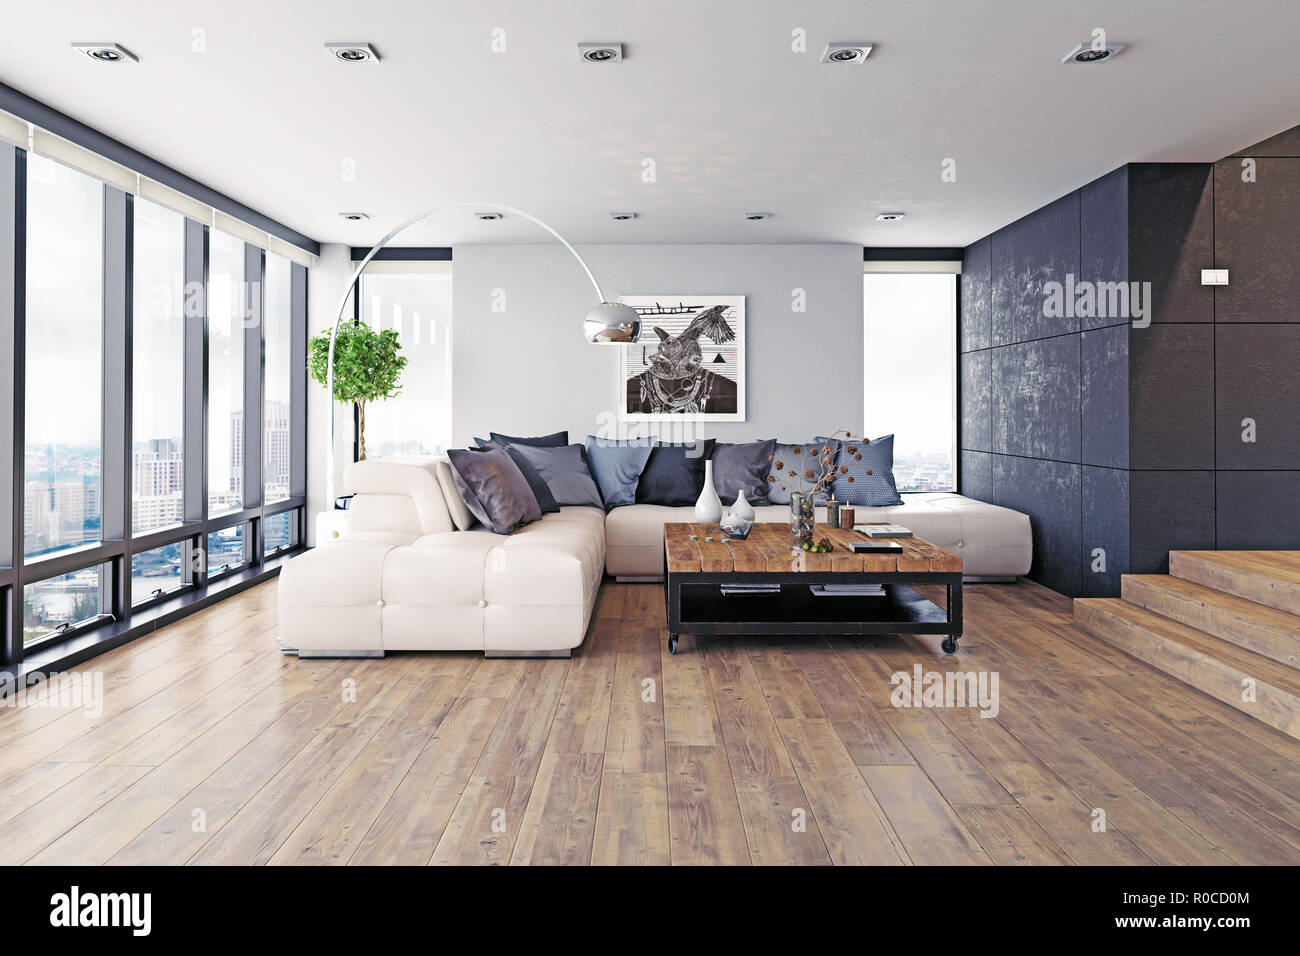 . modern design living room interior  3d rendering concept Stock Photo